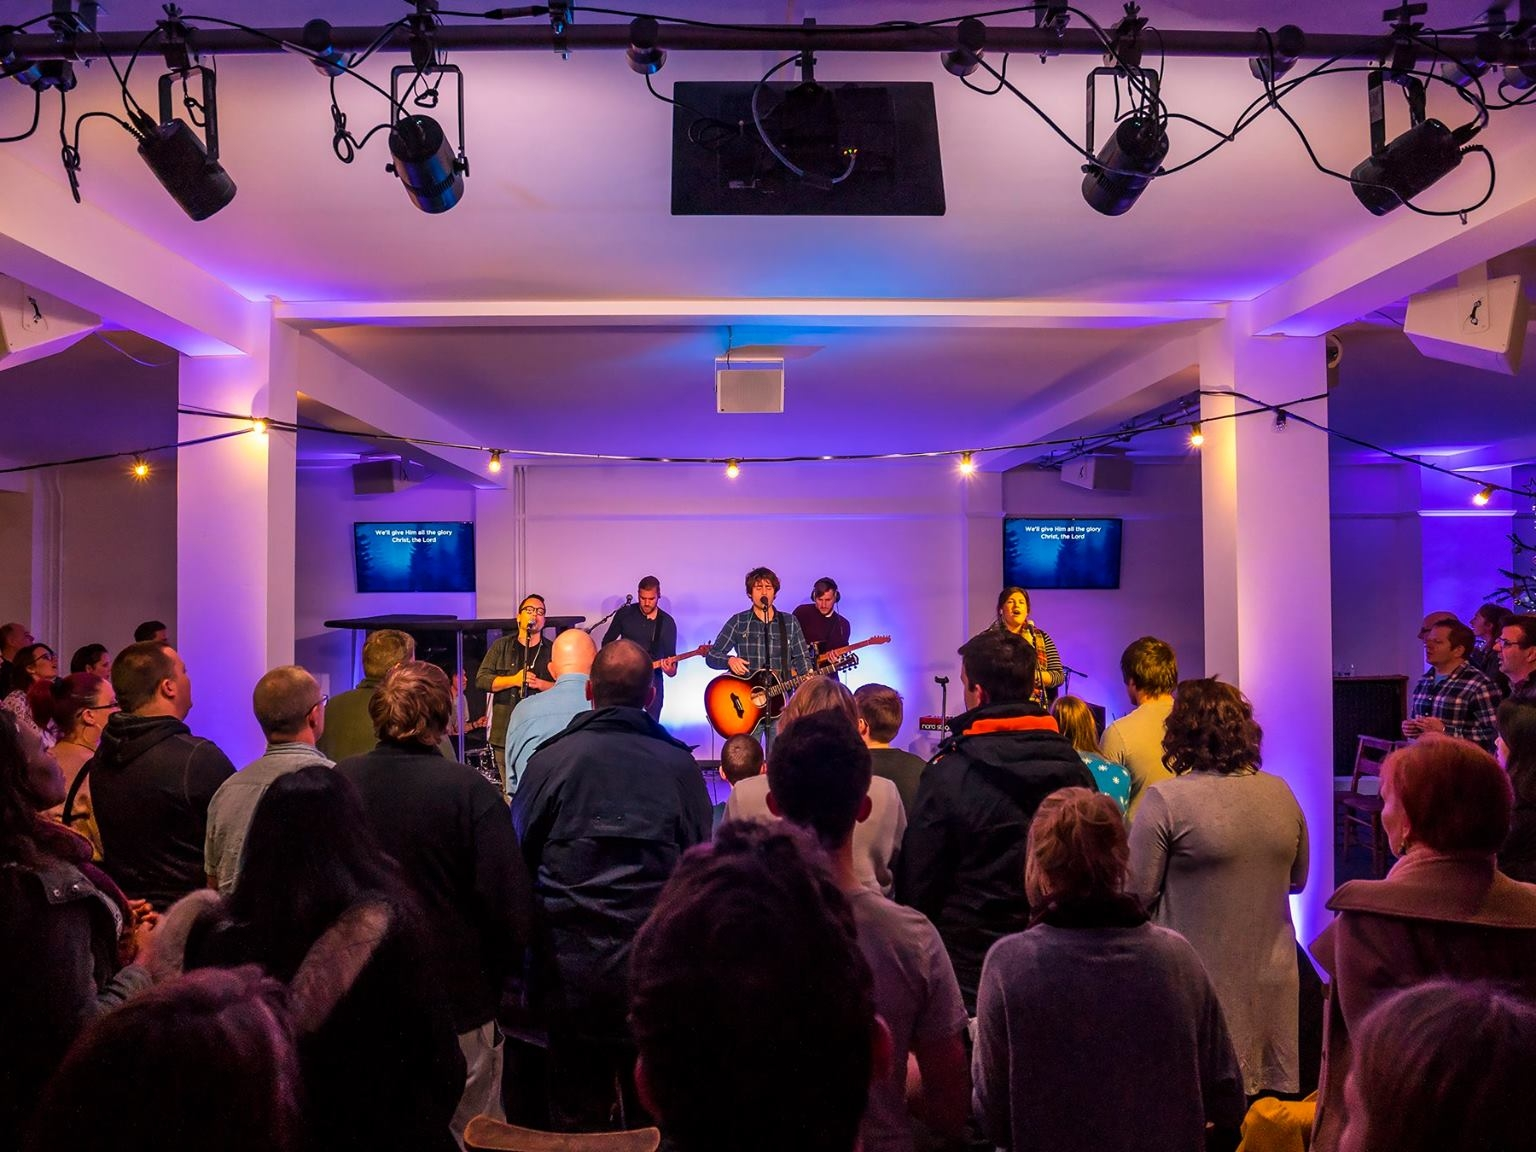 harbour church, portsmouth -